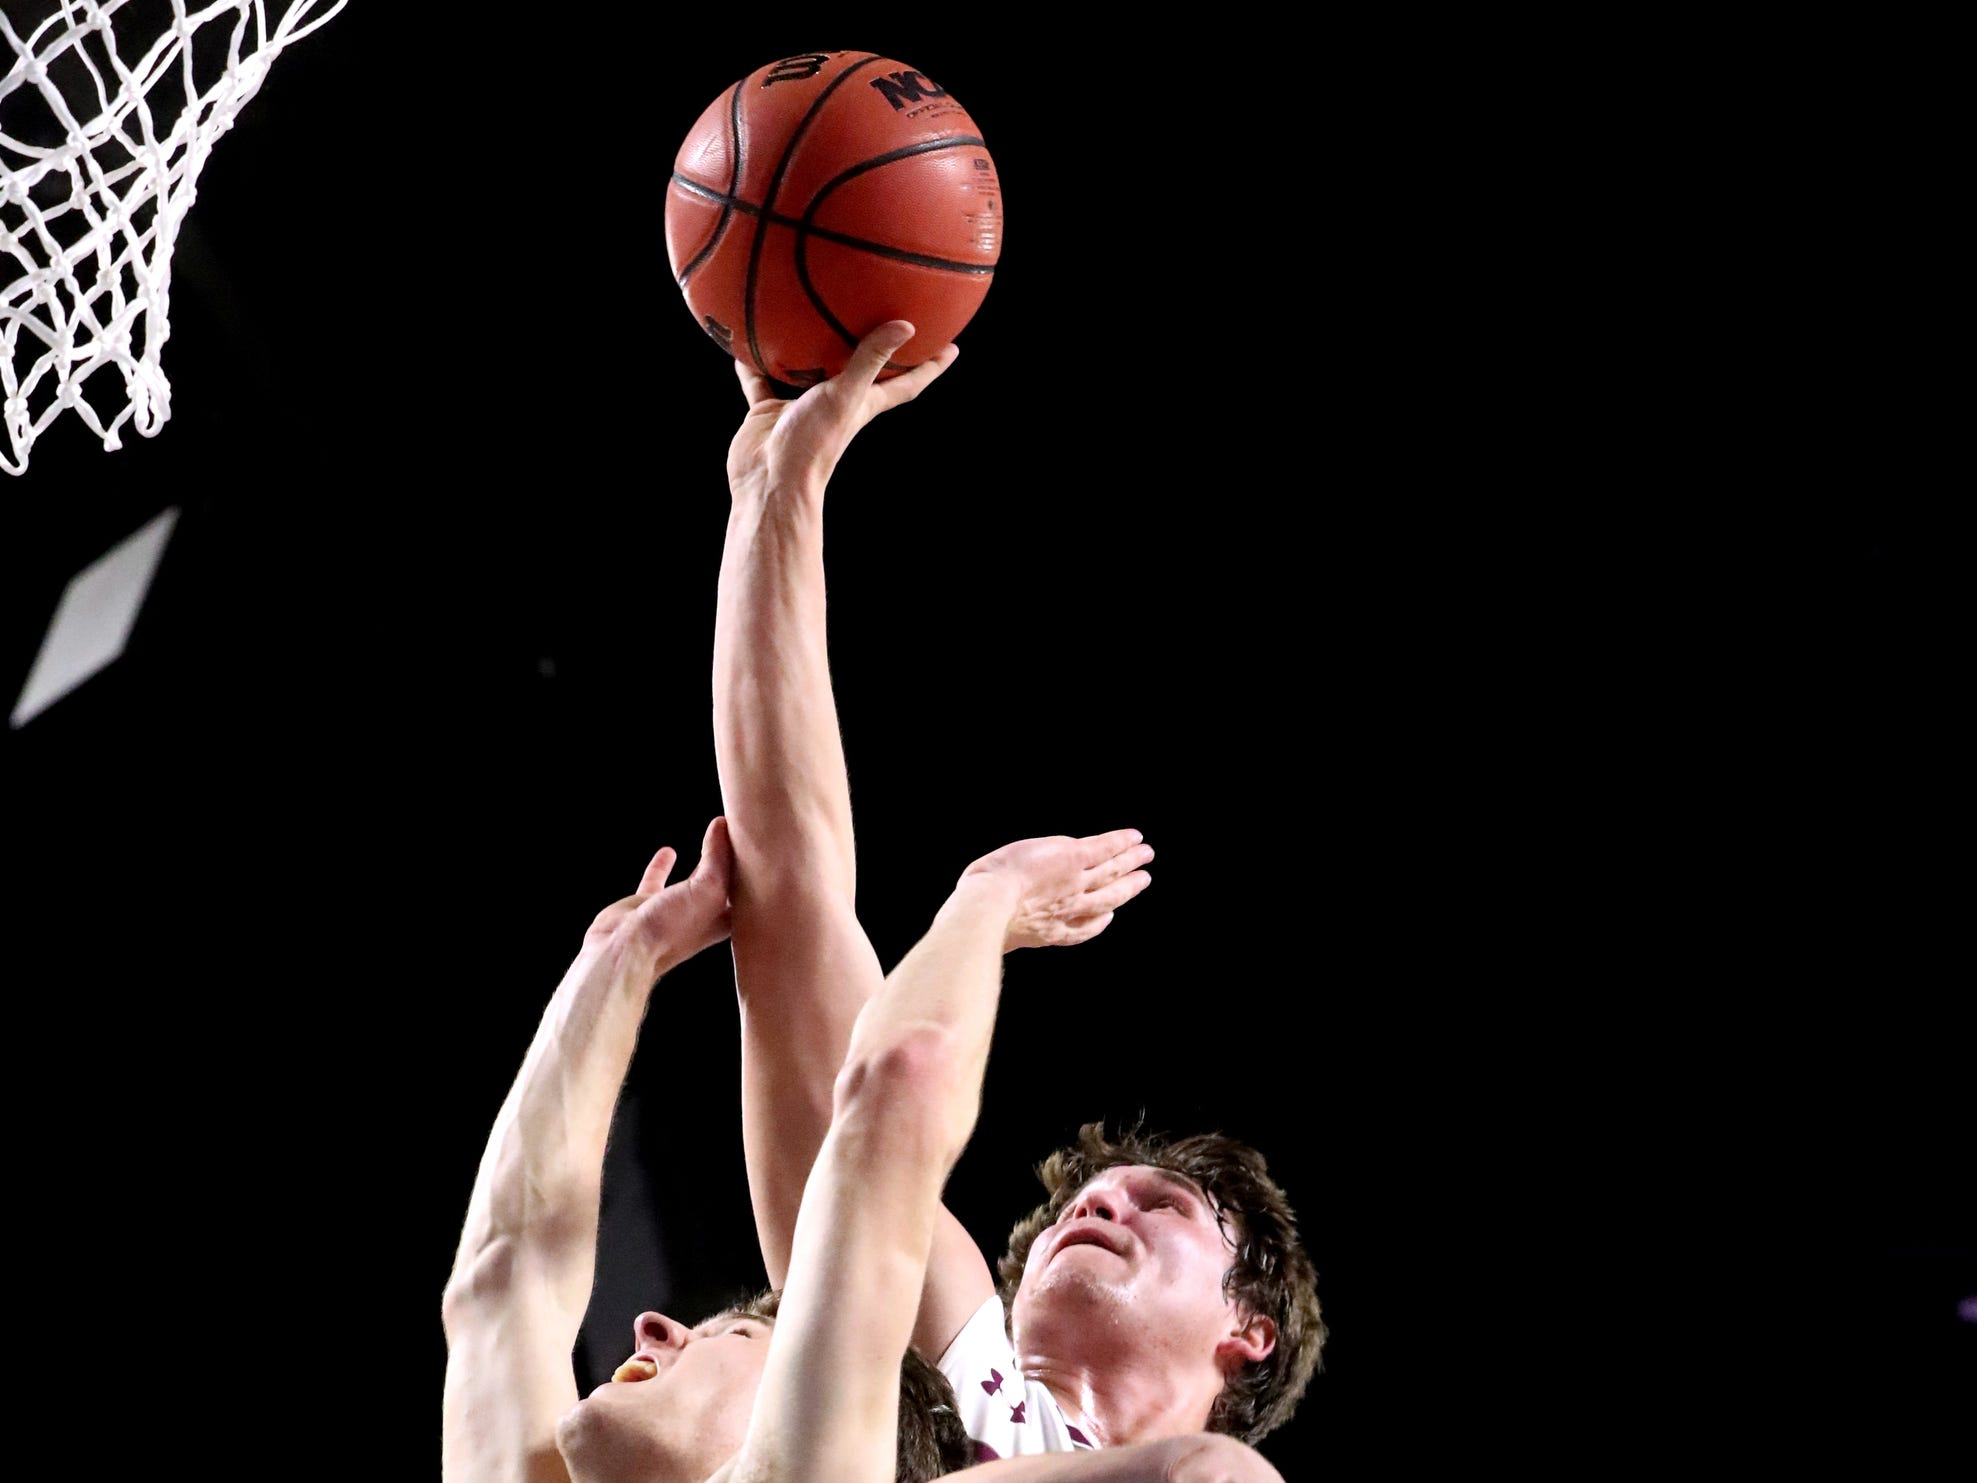 Eagleville's Ethan Cobb (12) tries to get a rebound back in as Columbia Academy's Carson Cary (12) and Andrew Logsdon (2) both guard him during the semifinal round of the TSSAA Class A Boys State Tournament, on Thursday, March 15, 2019, at Murphy Center in Murfreesboro, Tenn.